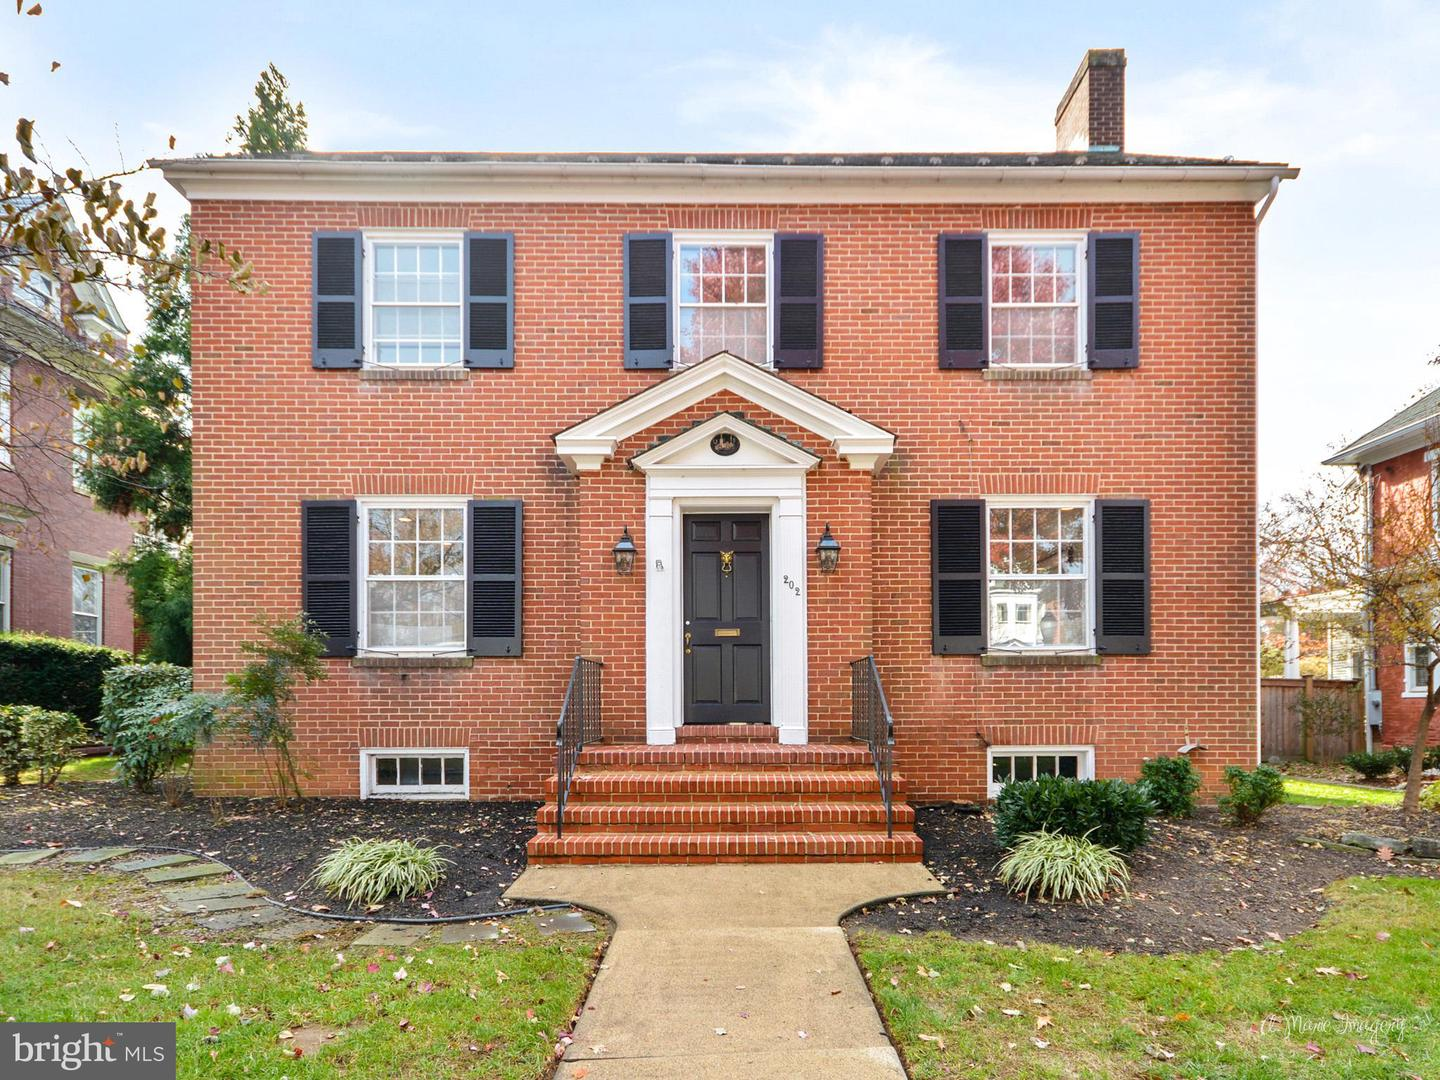 Property for Sale at Frederick, Maryland 21701 United States